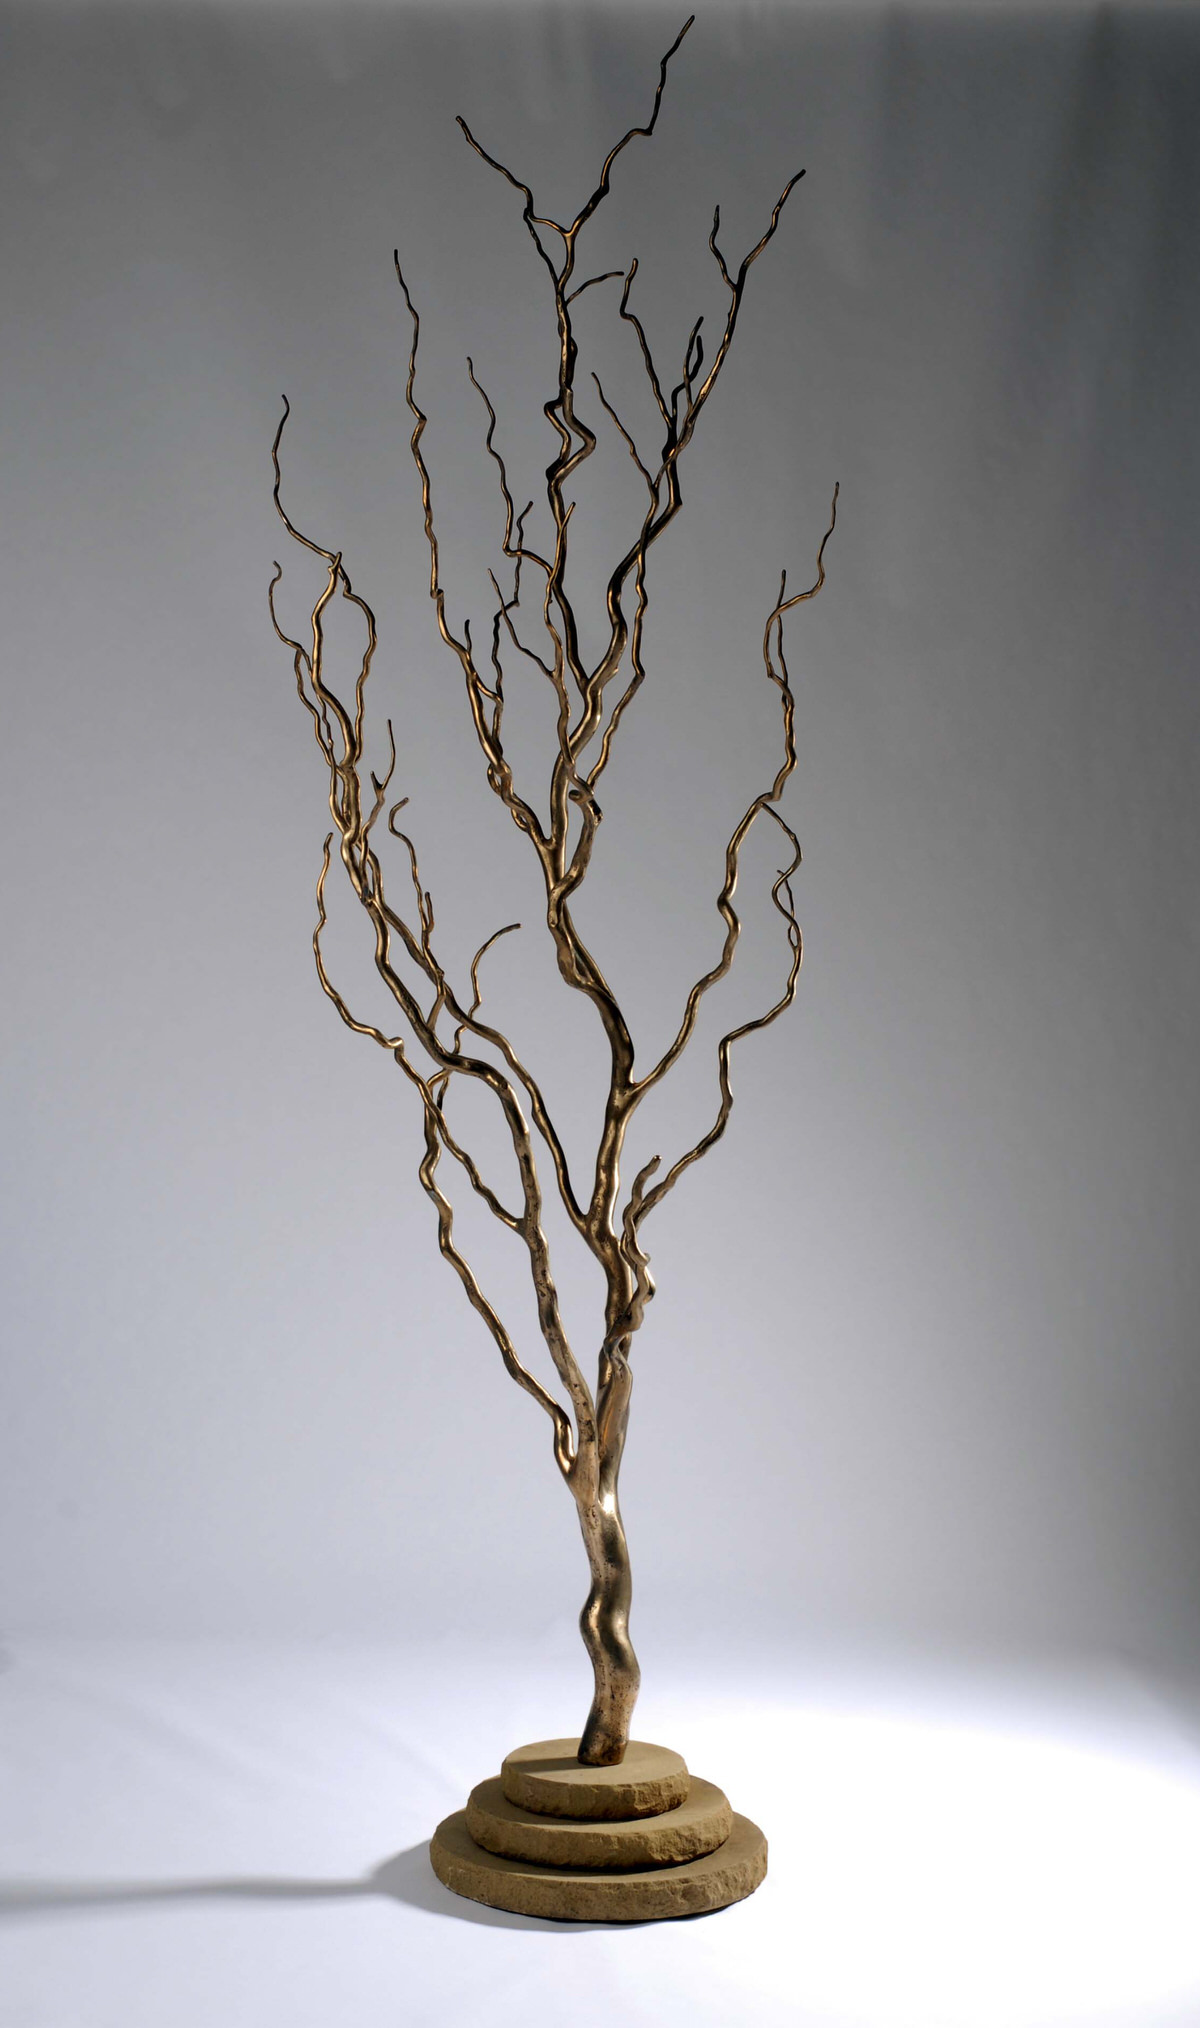 Willow Tree sculpture bronze sculpture for gardens sculpture for public spaces corporate sculpture tree design trees art indoor trees design offices by Mark Reed